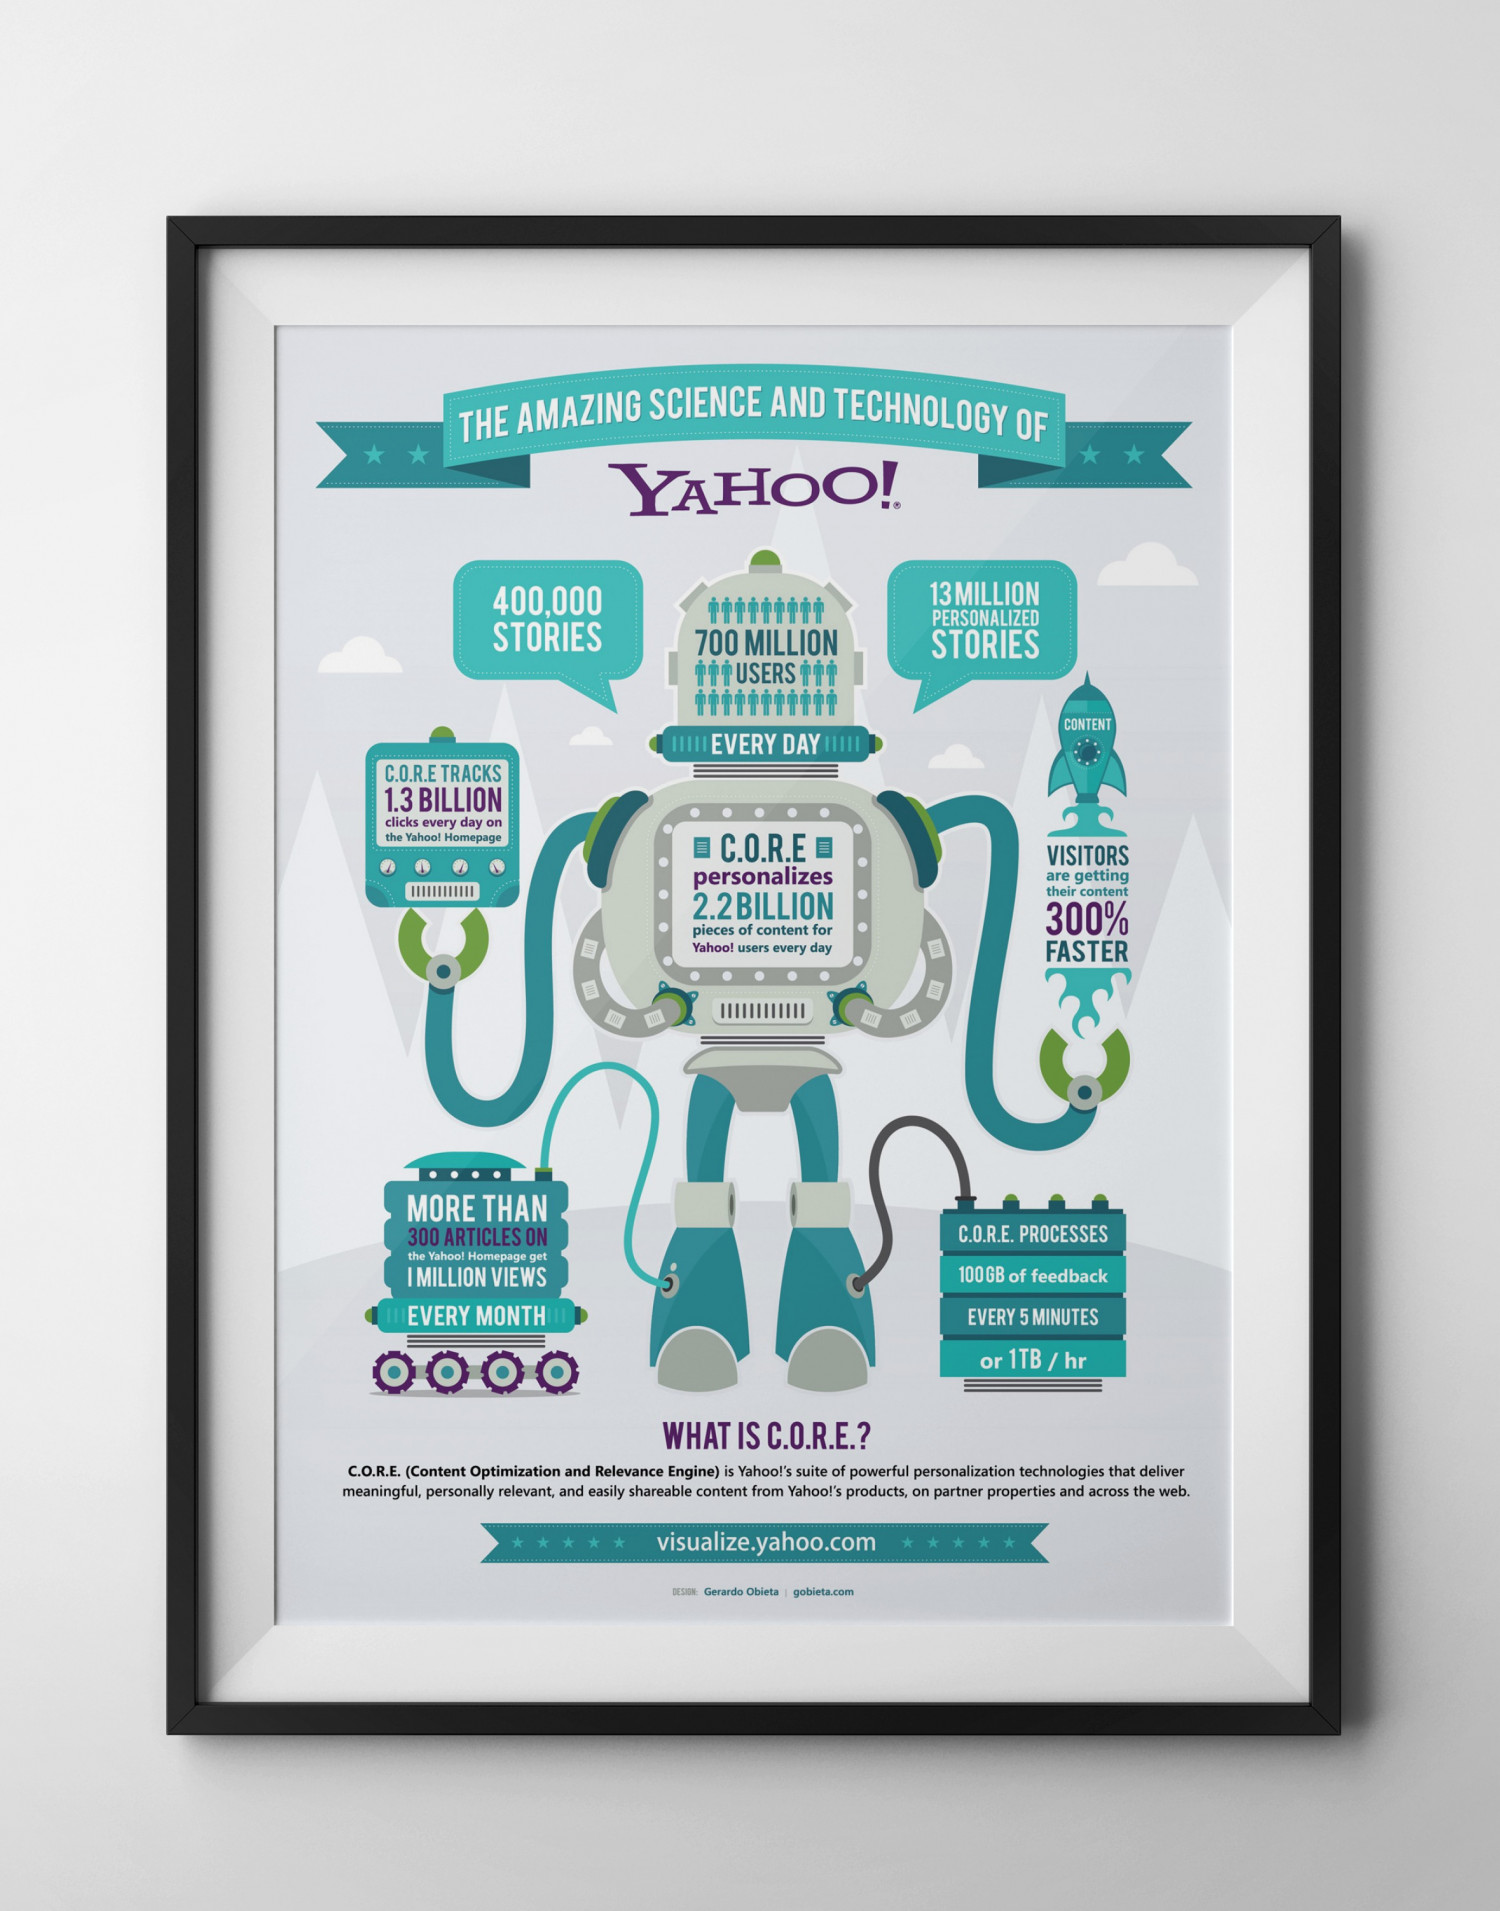 The Amazing Science and Technology of Yahoo! Infographic